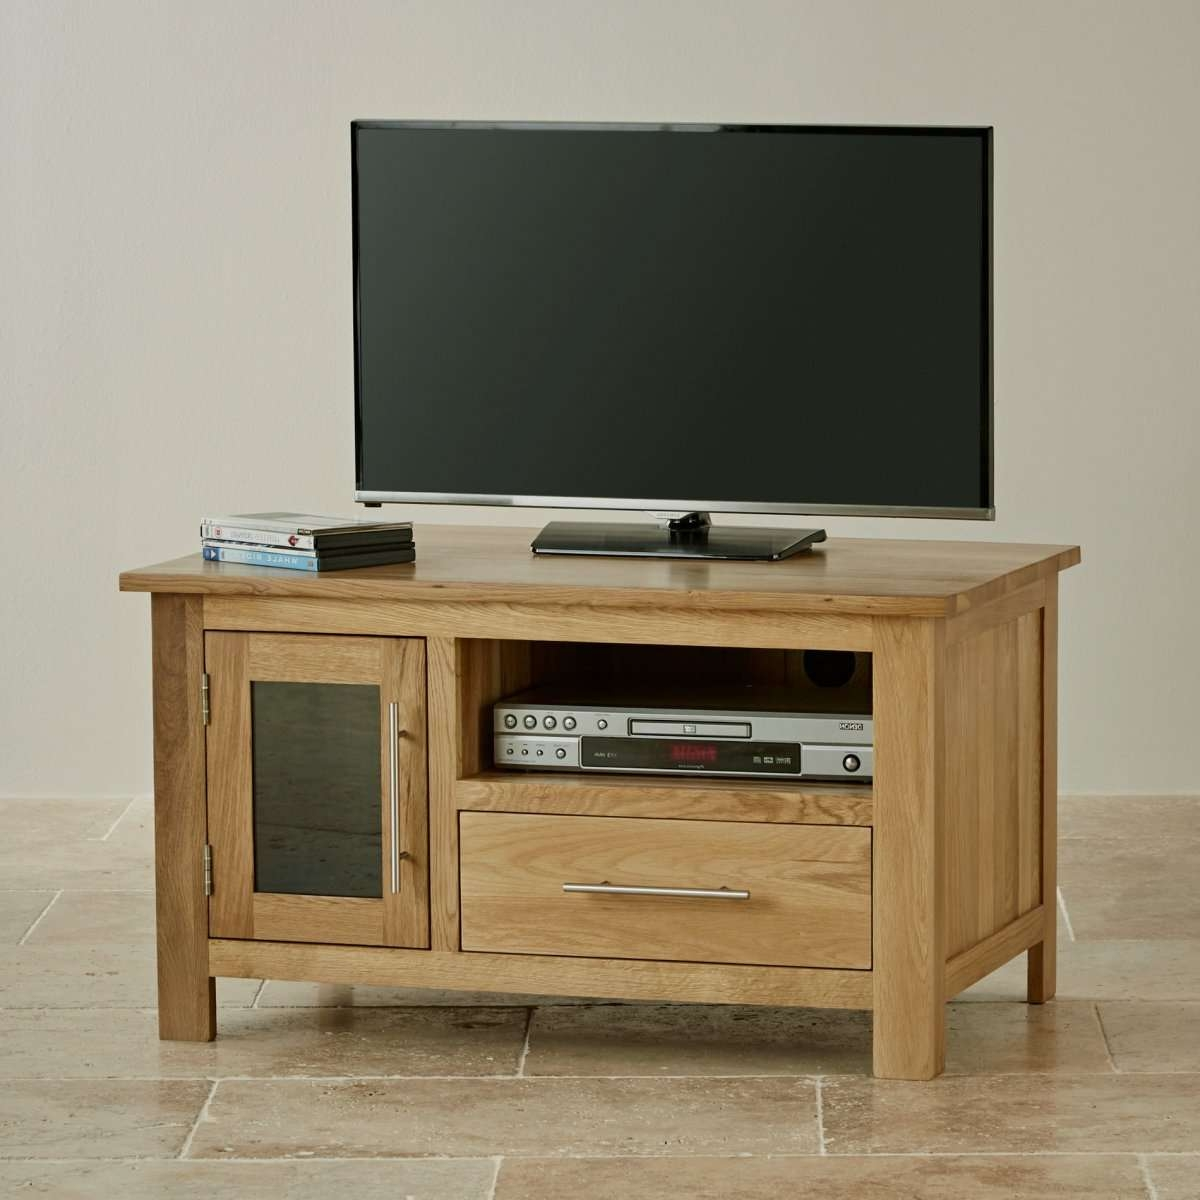 Rivermead Natural Solid Oak Tv + Dvd Cabinet | Lounge Furniture Within Small Tv Cabinets (View 6 of 20)